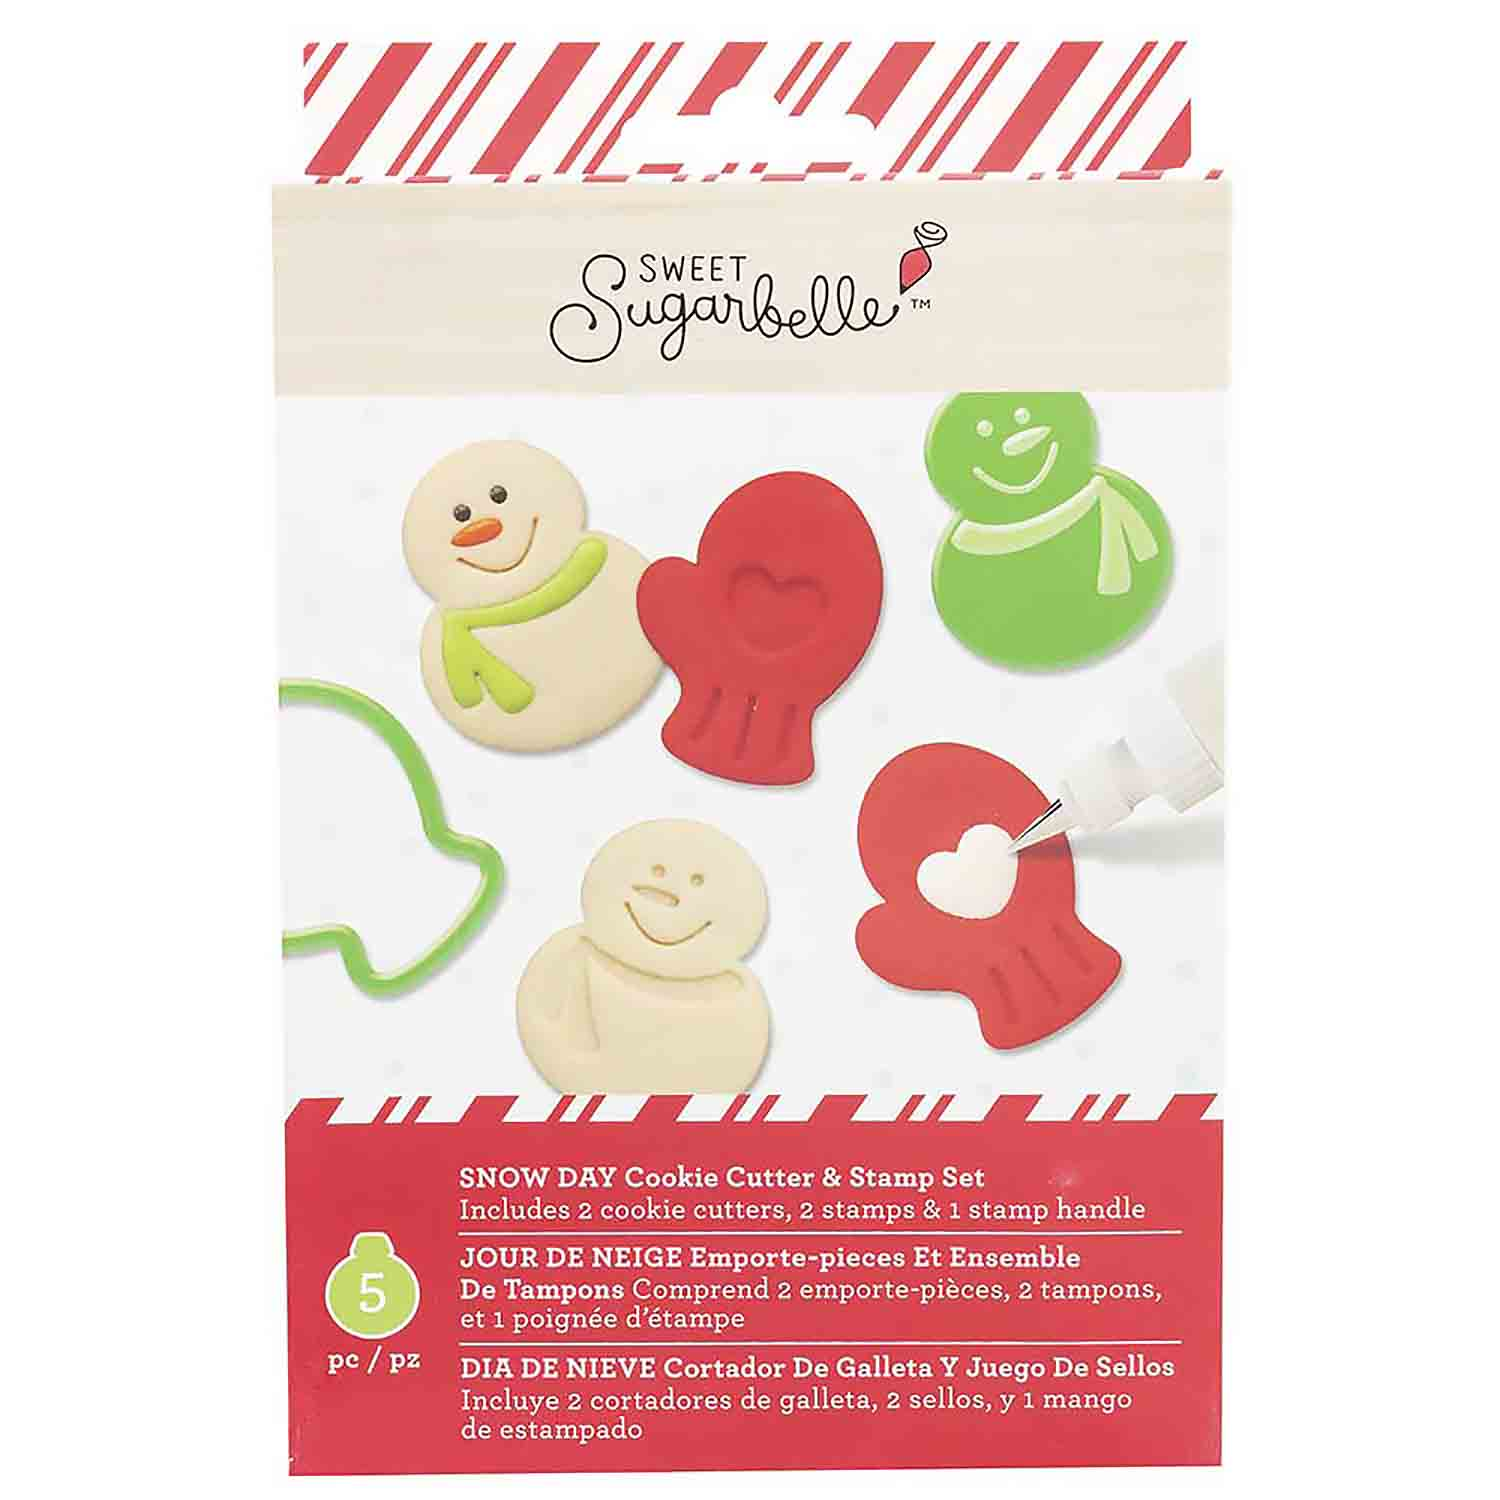 Snow Day Cookie Cutter and Stamp Set